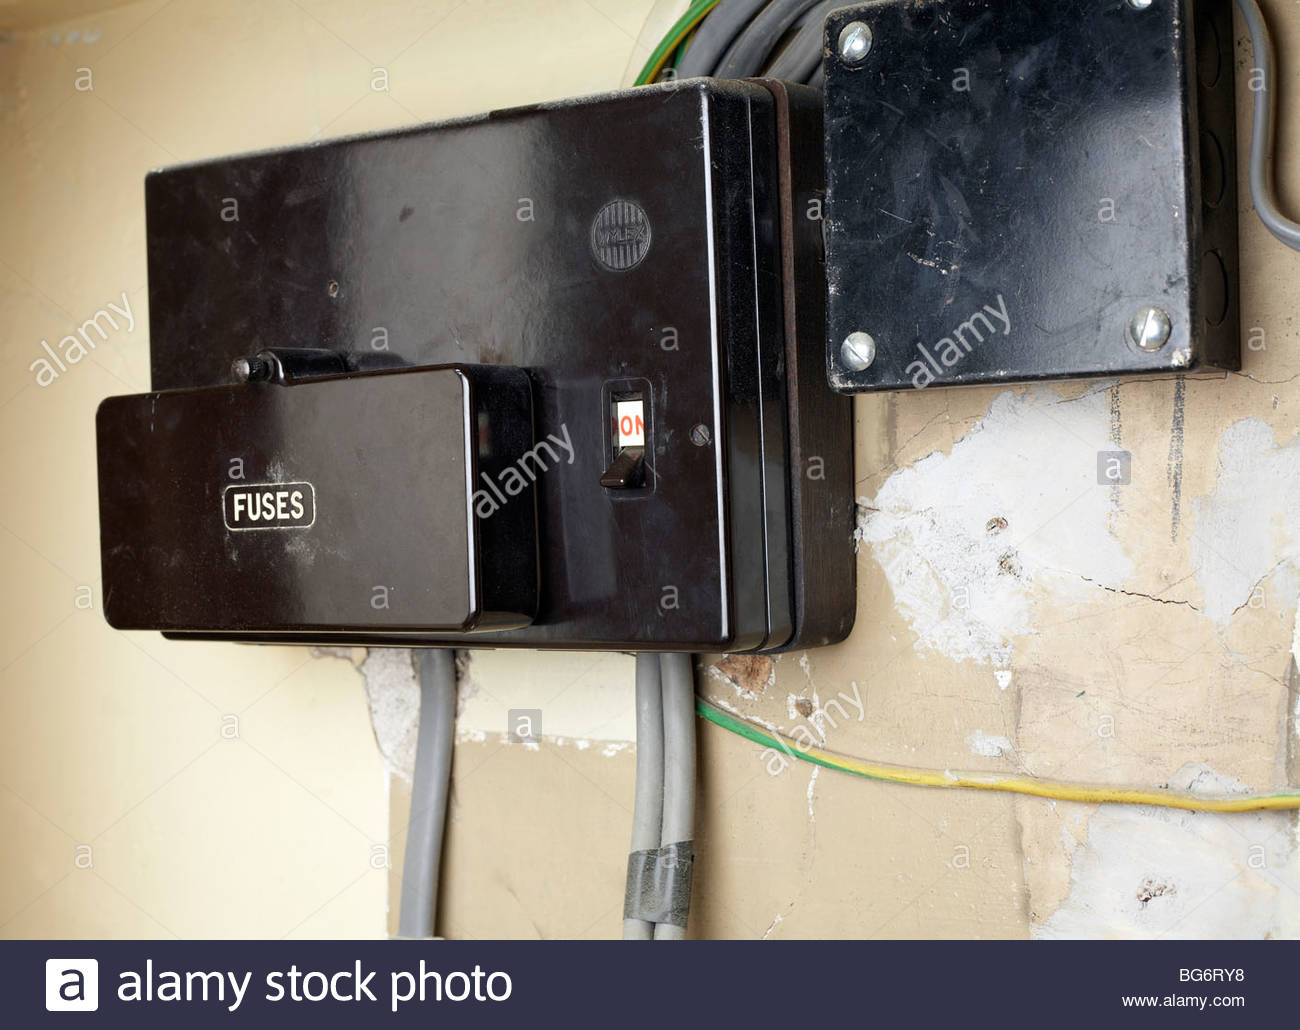 fusebox house stock photos & fusebox house stock images alamy blown fuse house fuse box in house stock image